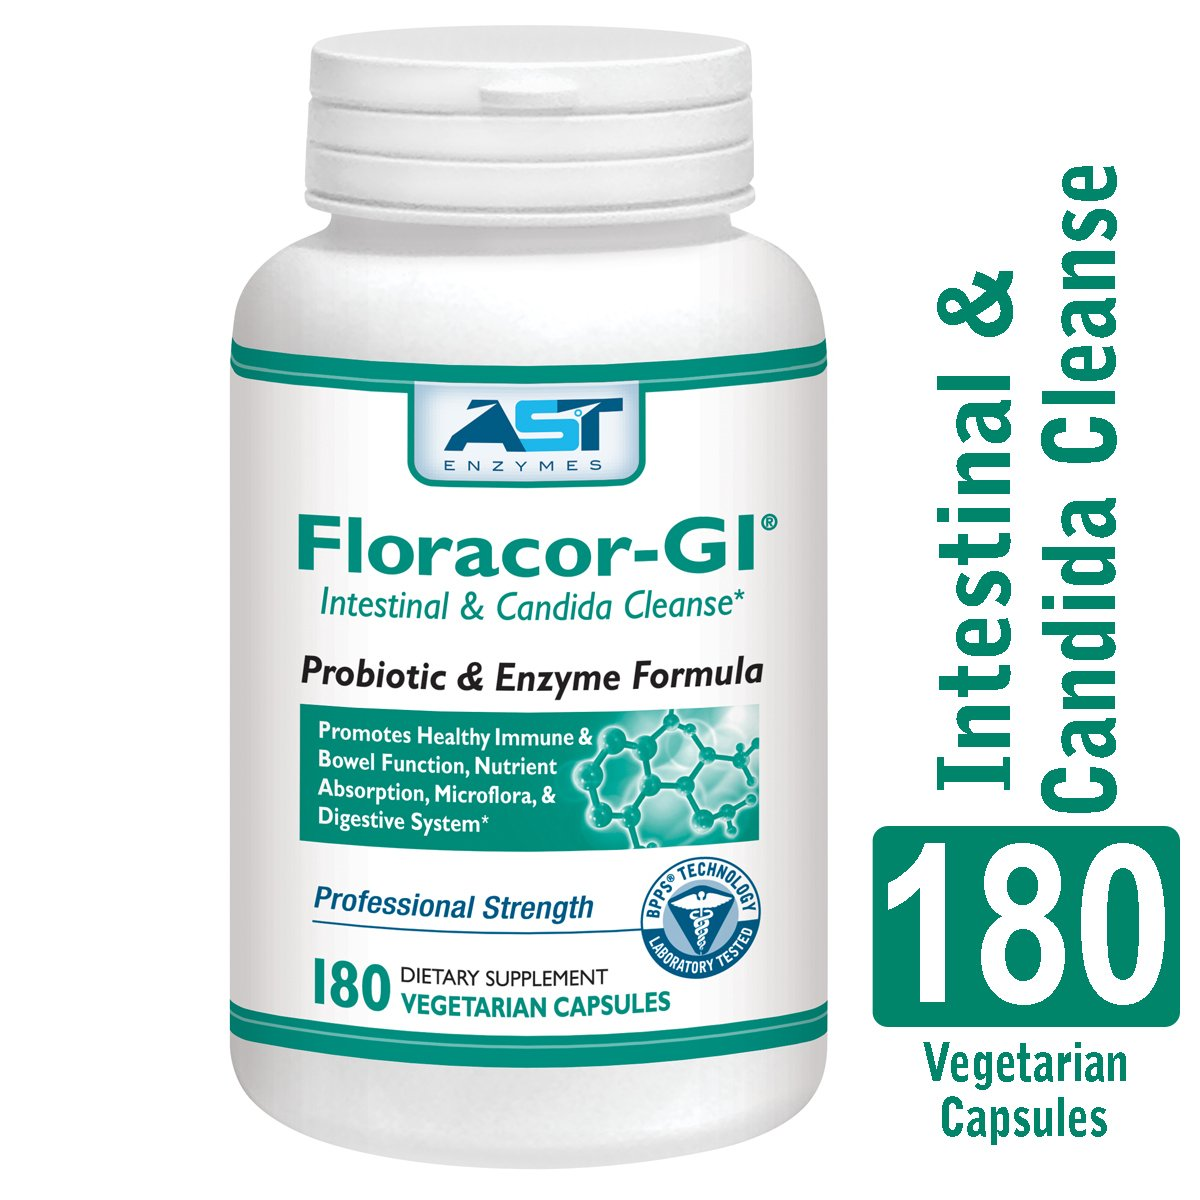 Floracor-GI - 180 Vegetarian Capsules - Intestinal and Candida Cleanse for Maximum Absorption - Natural Premium Probiotic, Prebiotic and Enzyme Formula - AST Enzymes